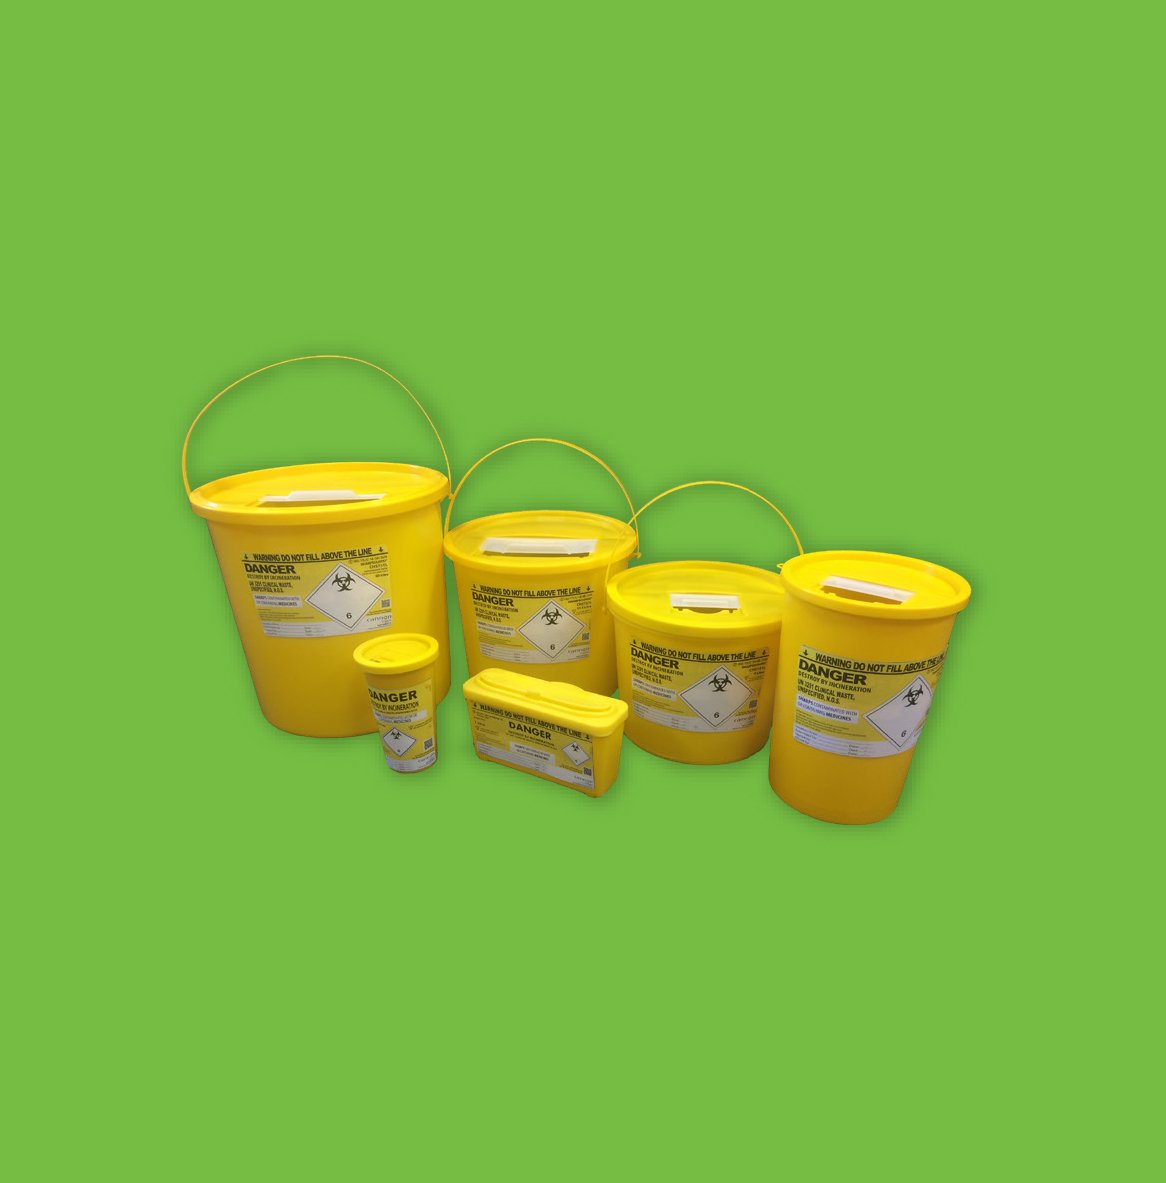 pharmi sharps disposal bin with yellow closed lid